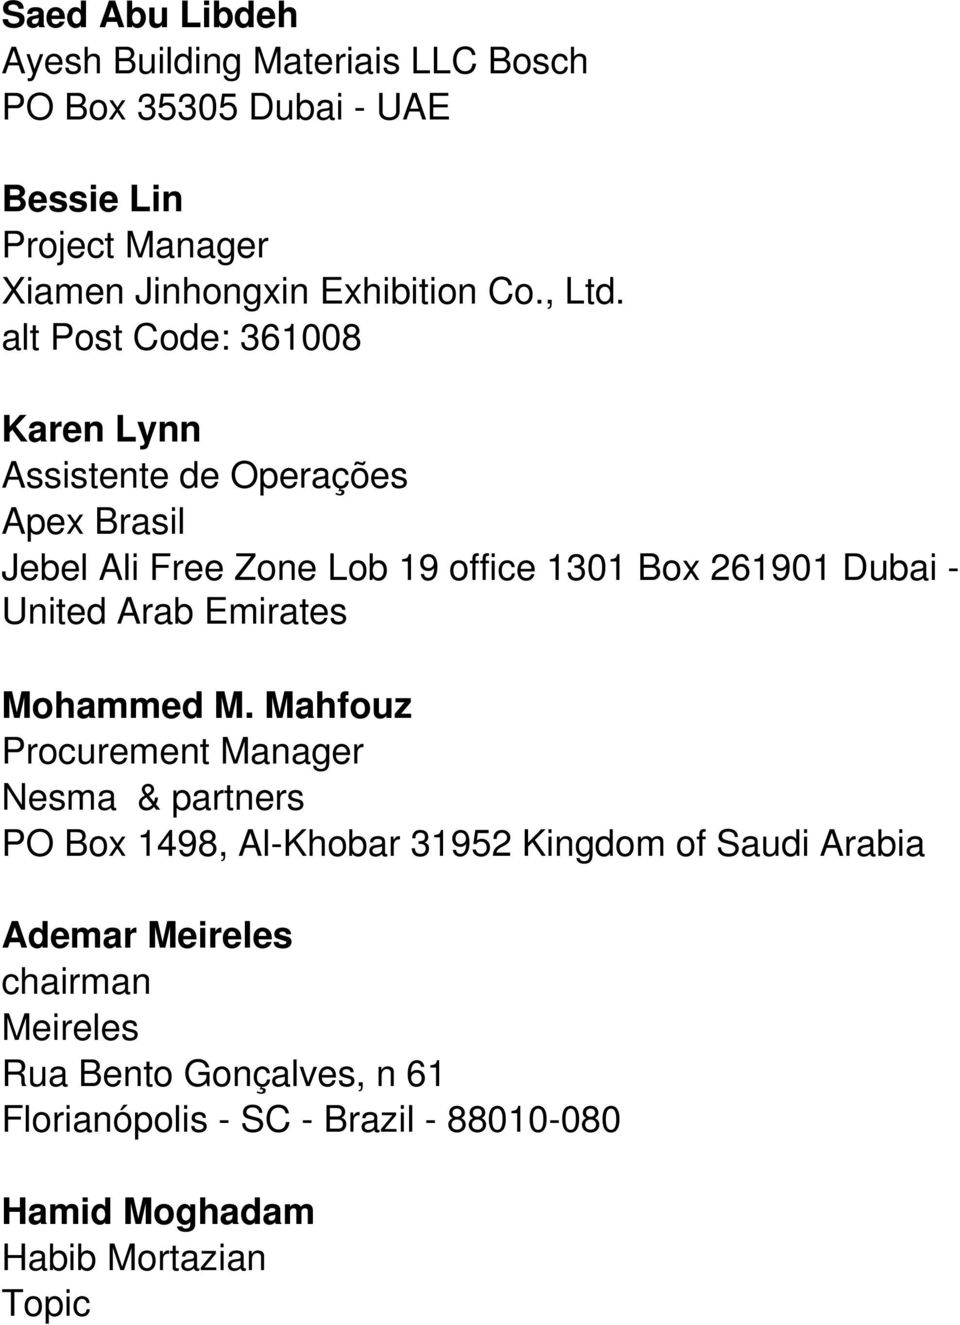 alt Post Code: 361008 Karen Lynn Assistente de Operações Apex Brasil Jebel Ali Free Zone Lob 19 office 1301 Box 261901 Dubai - United